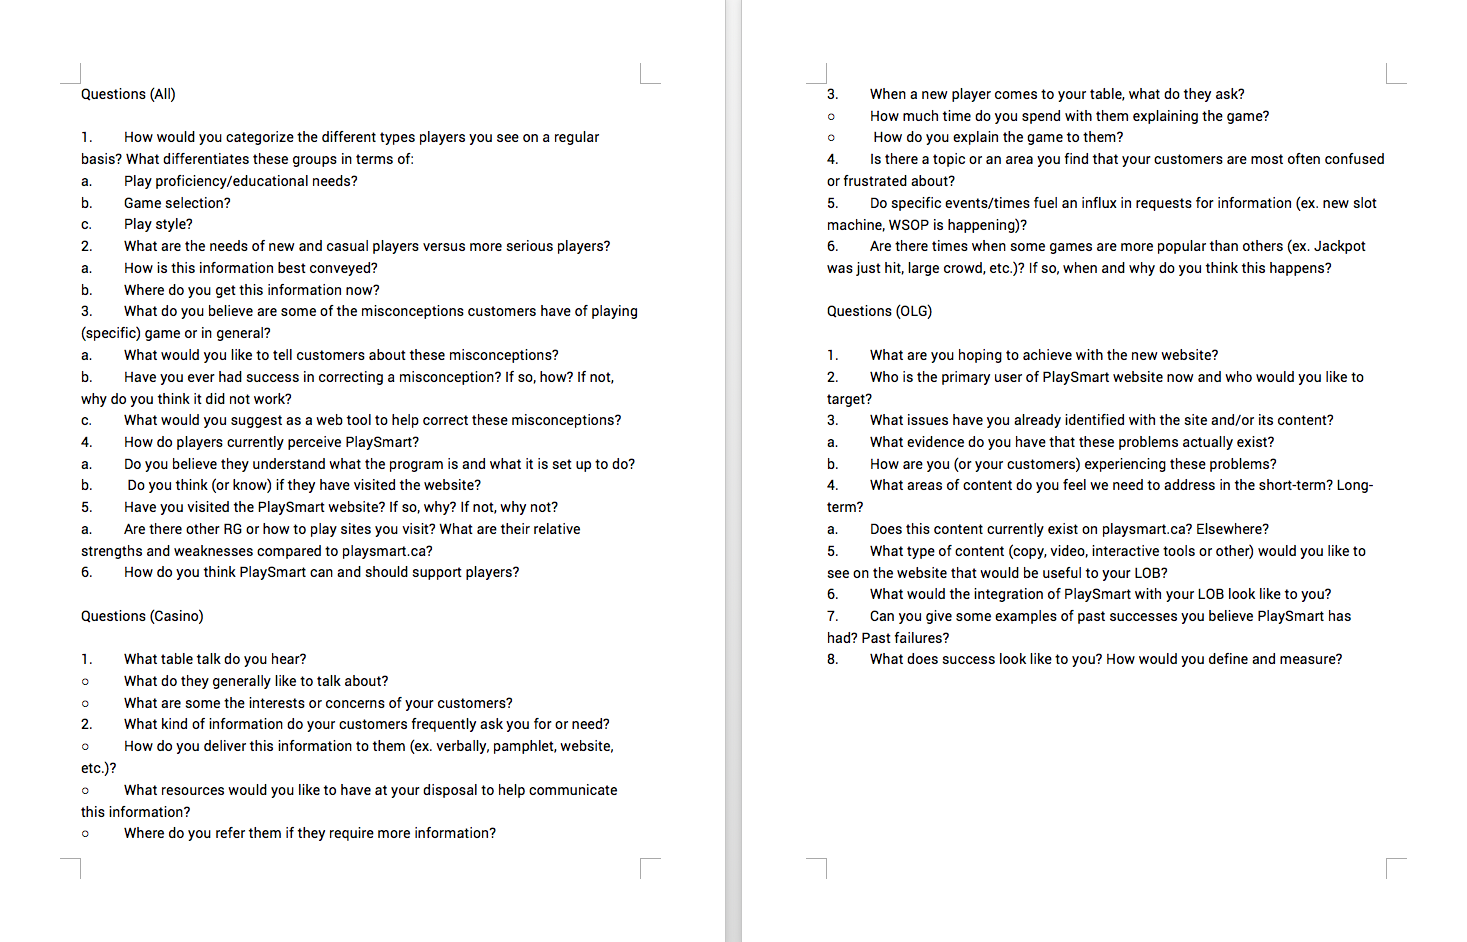 Stakeholder Interviews - Sample Questions